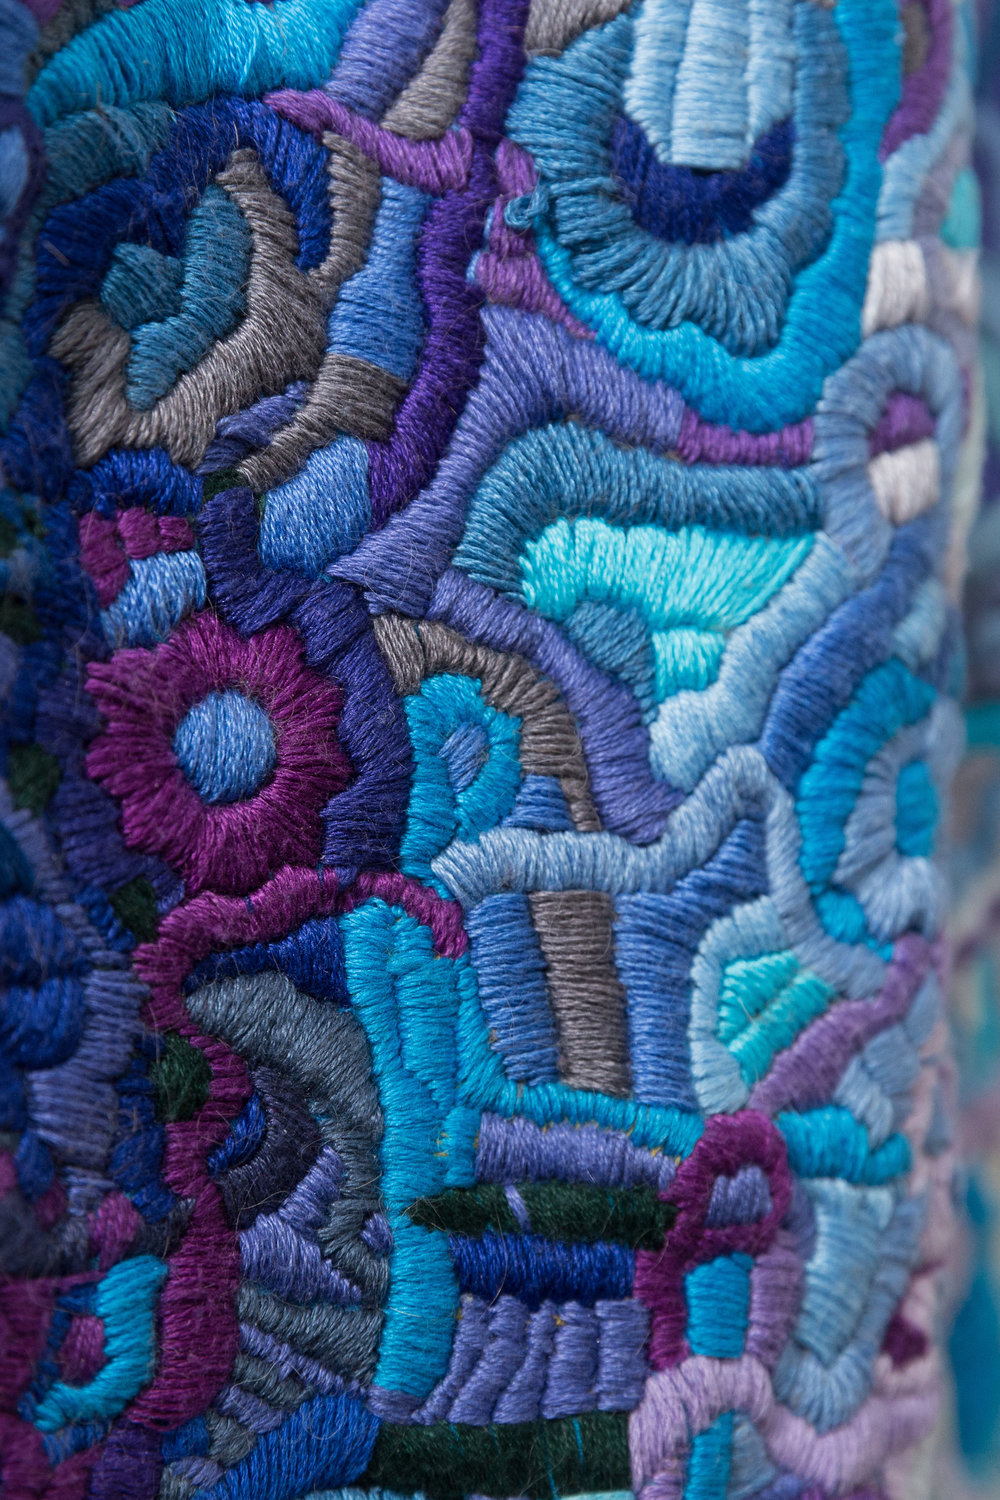 "Embroidery can function as a powerfully self-expressive site for tactile communication that isn't bound to the conventions of an alphabet. - Historically, embroidery was remedial labor for ""mad"" or ""disorderly"" women in institutional settings. But the value of such work expands well beyond the production and maintenance of patients' garments."